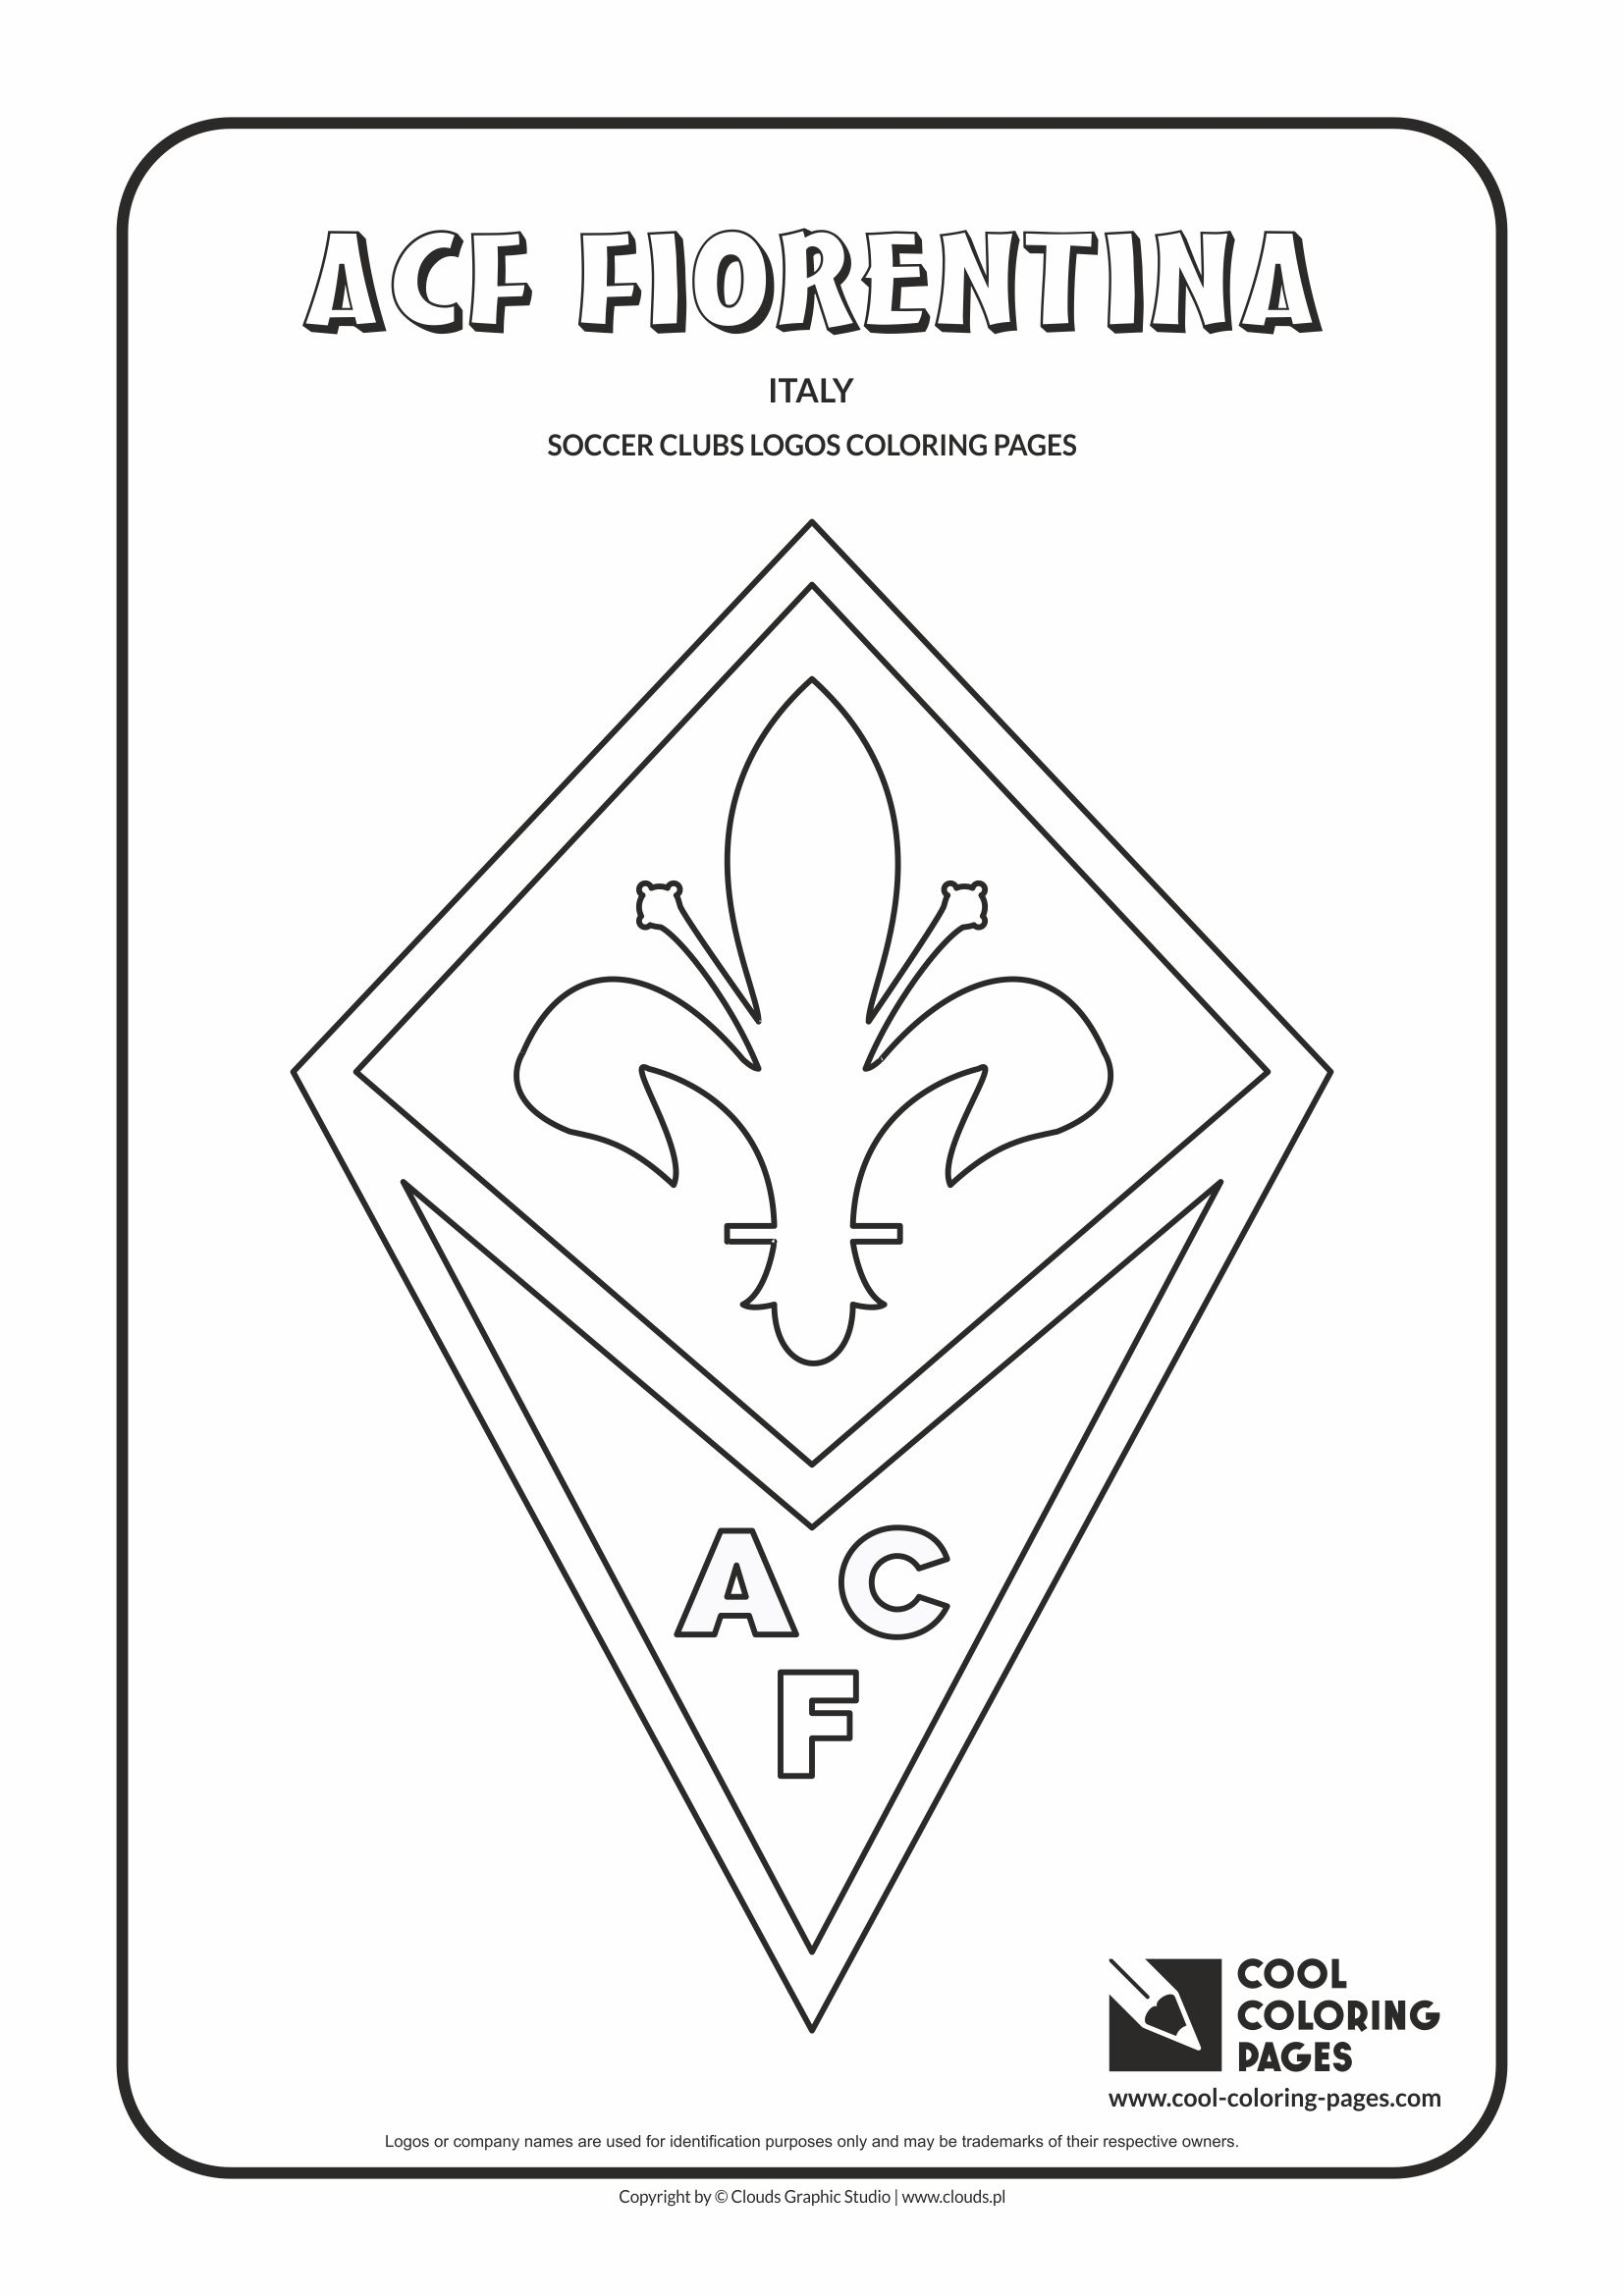 acf fiorentina logo coloring coloring page with acf fiorentina logo acf fiorentina logo colouring